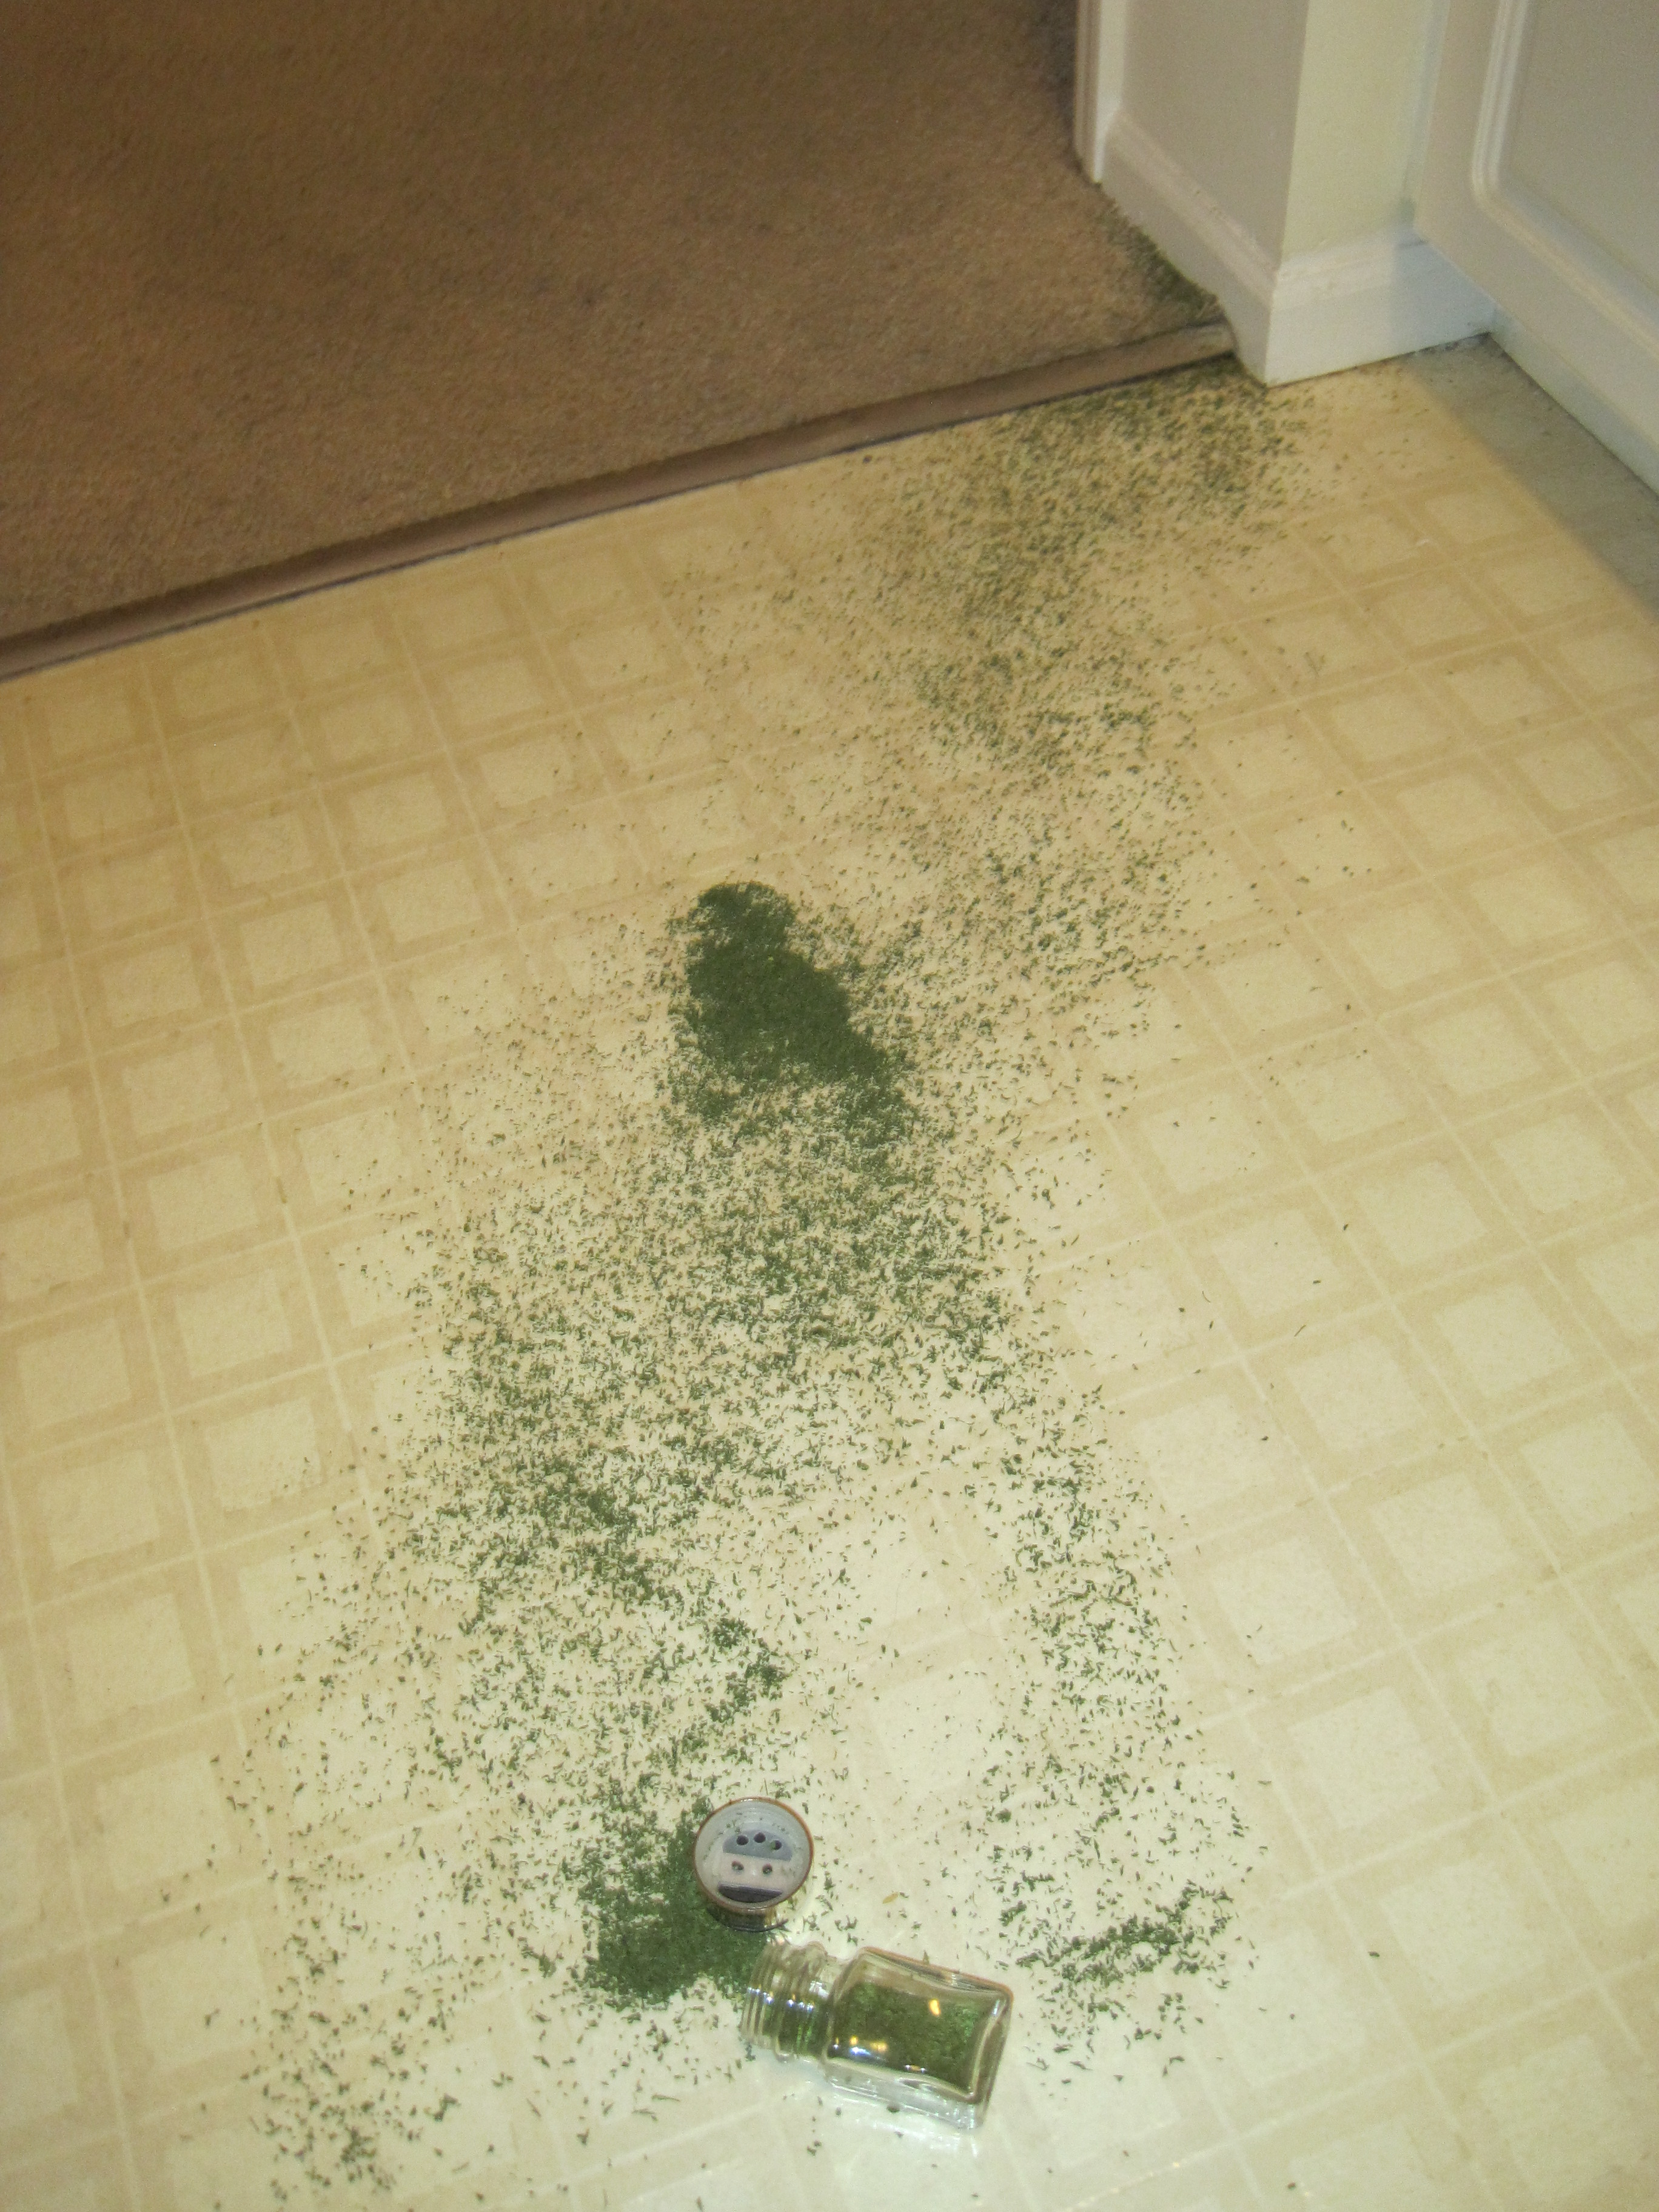 Yup, that's parsley...all over the floor...